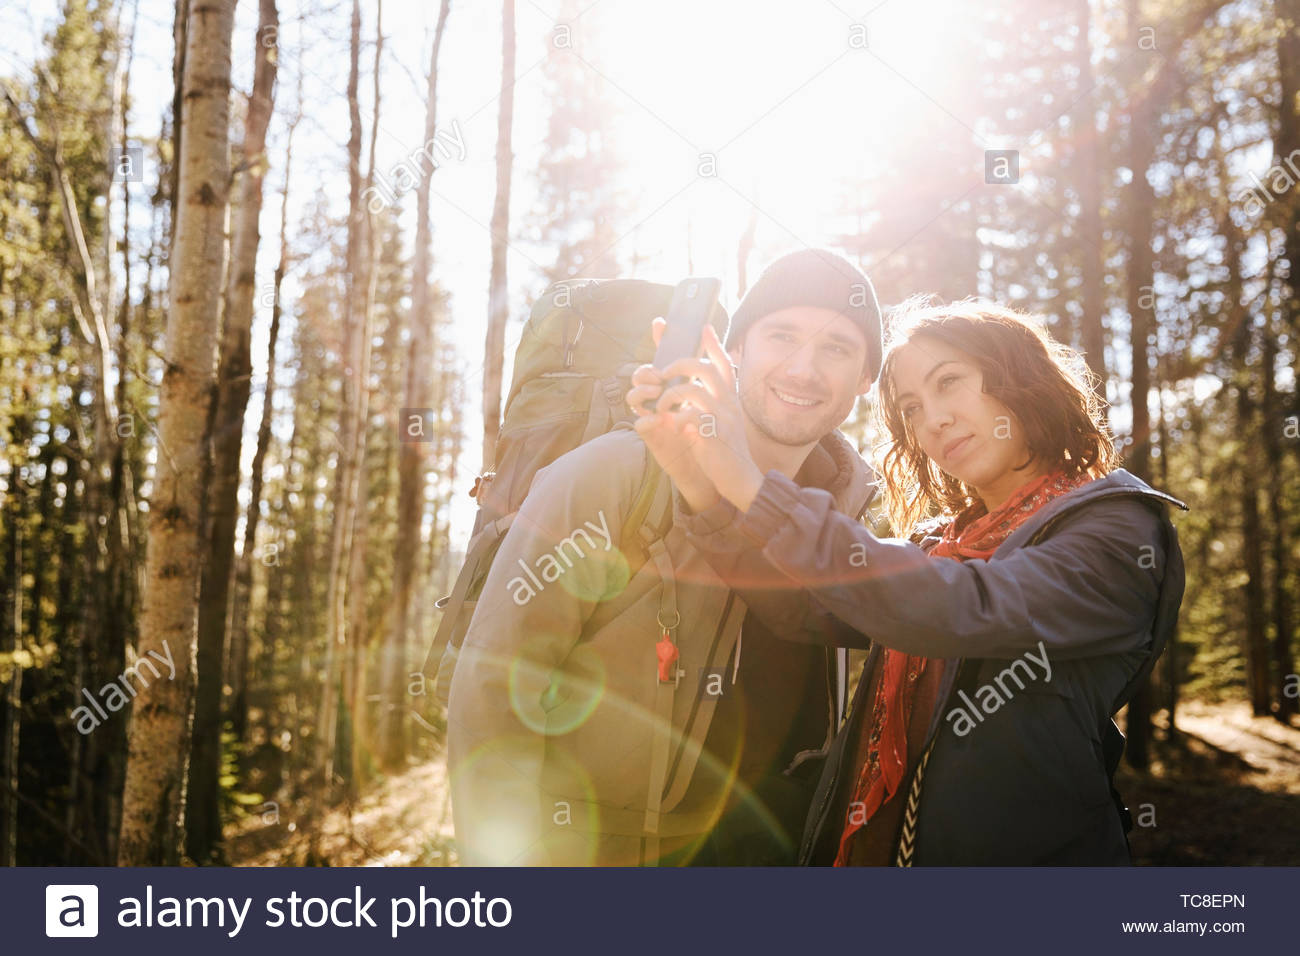 Couple taking selfie, hiking in sunny woods - Stock Image